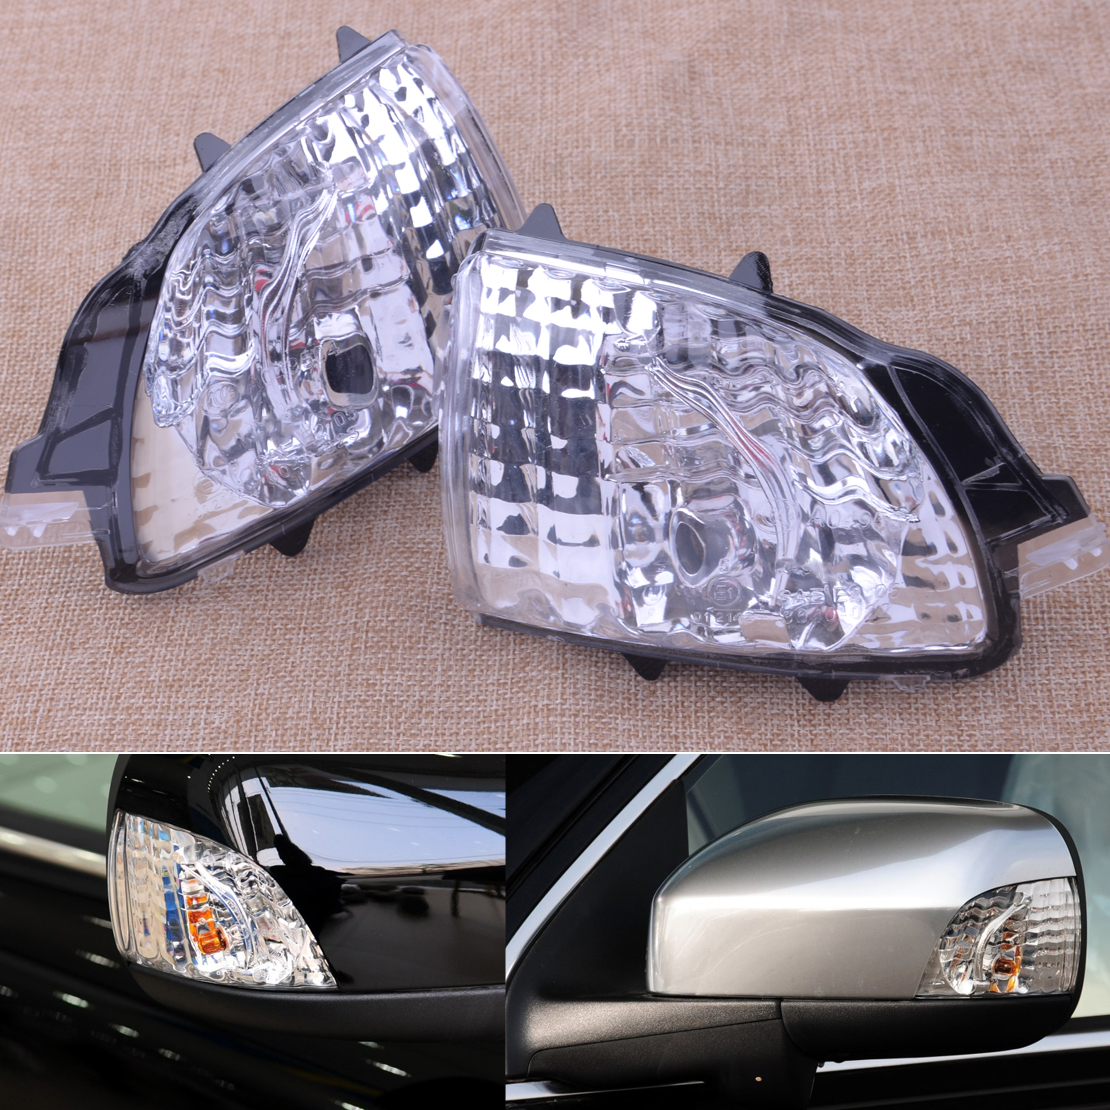 L Side Wing Mirror Turn Signal Indicator Lens for VOLVO S60 S80 V70 C30 Pair R